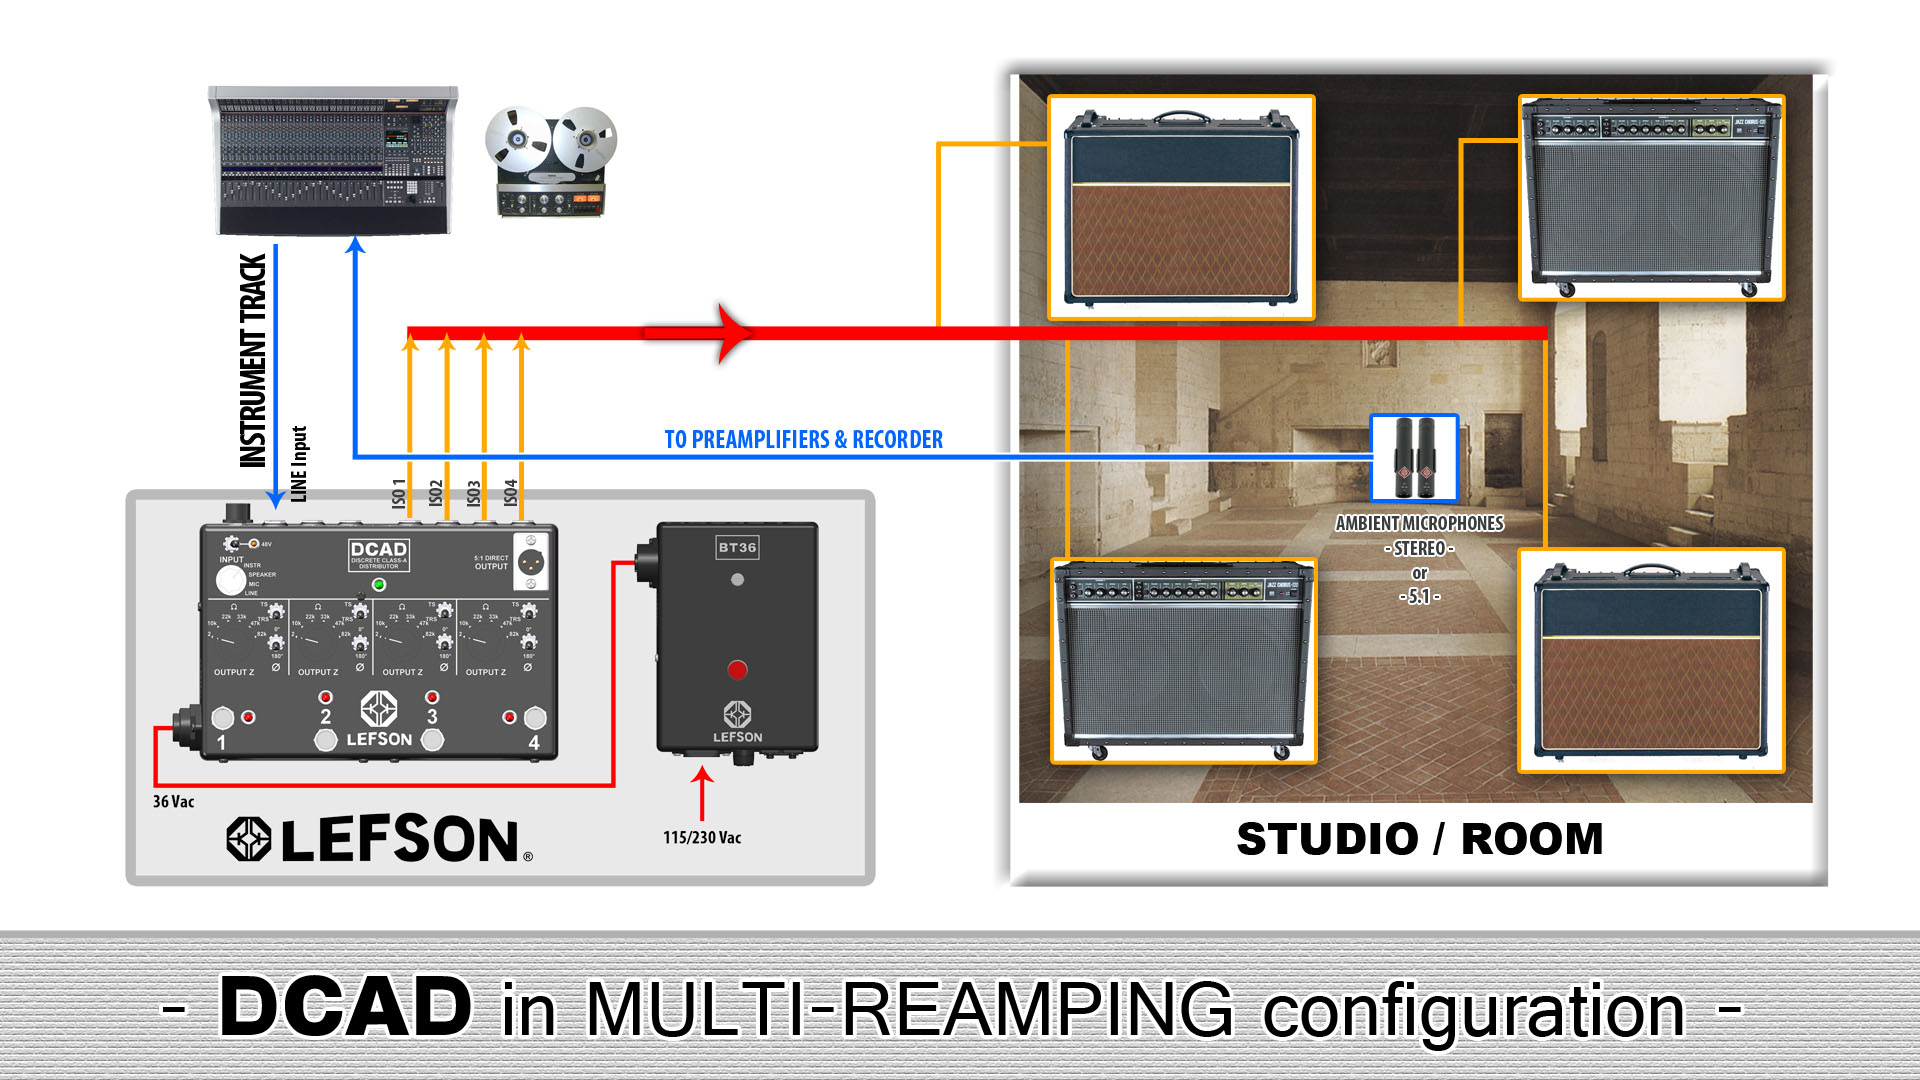 Picture of multi-reamping with the DCAD